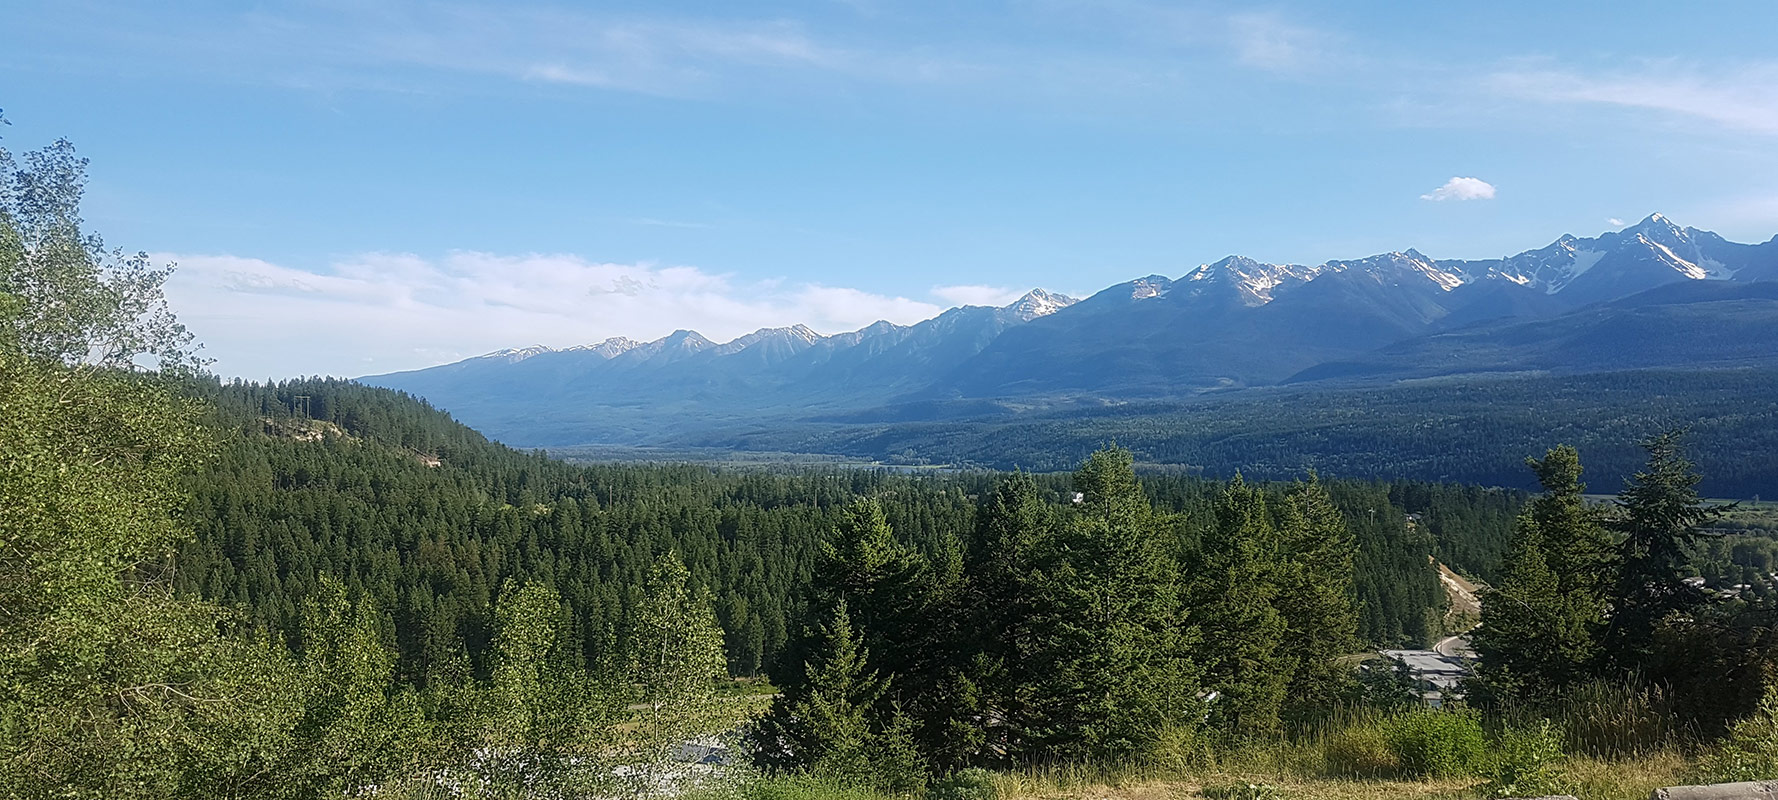 After renting a one-way car rental from Vancouver to Calgary, we look for things to do in Golden, BC. We chose adventure - of the river rafting kind.